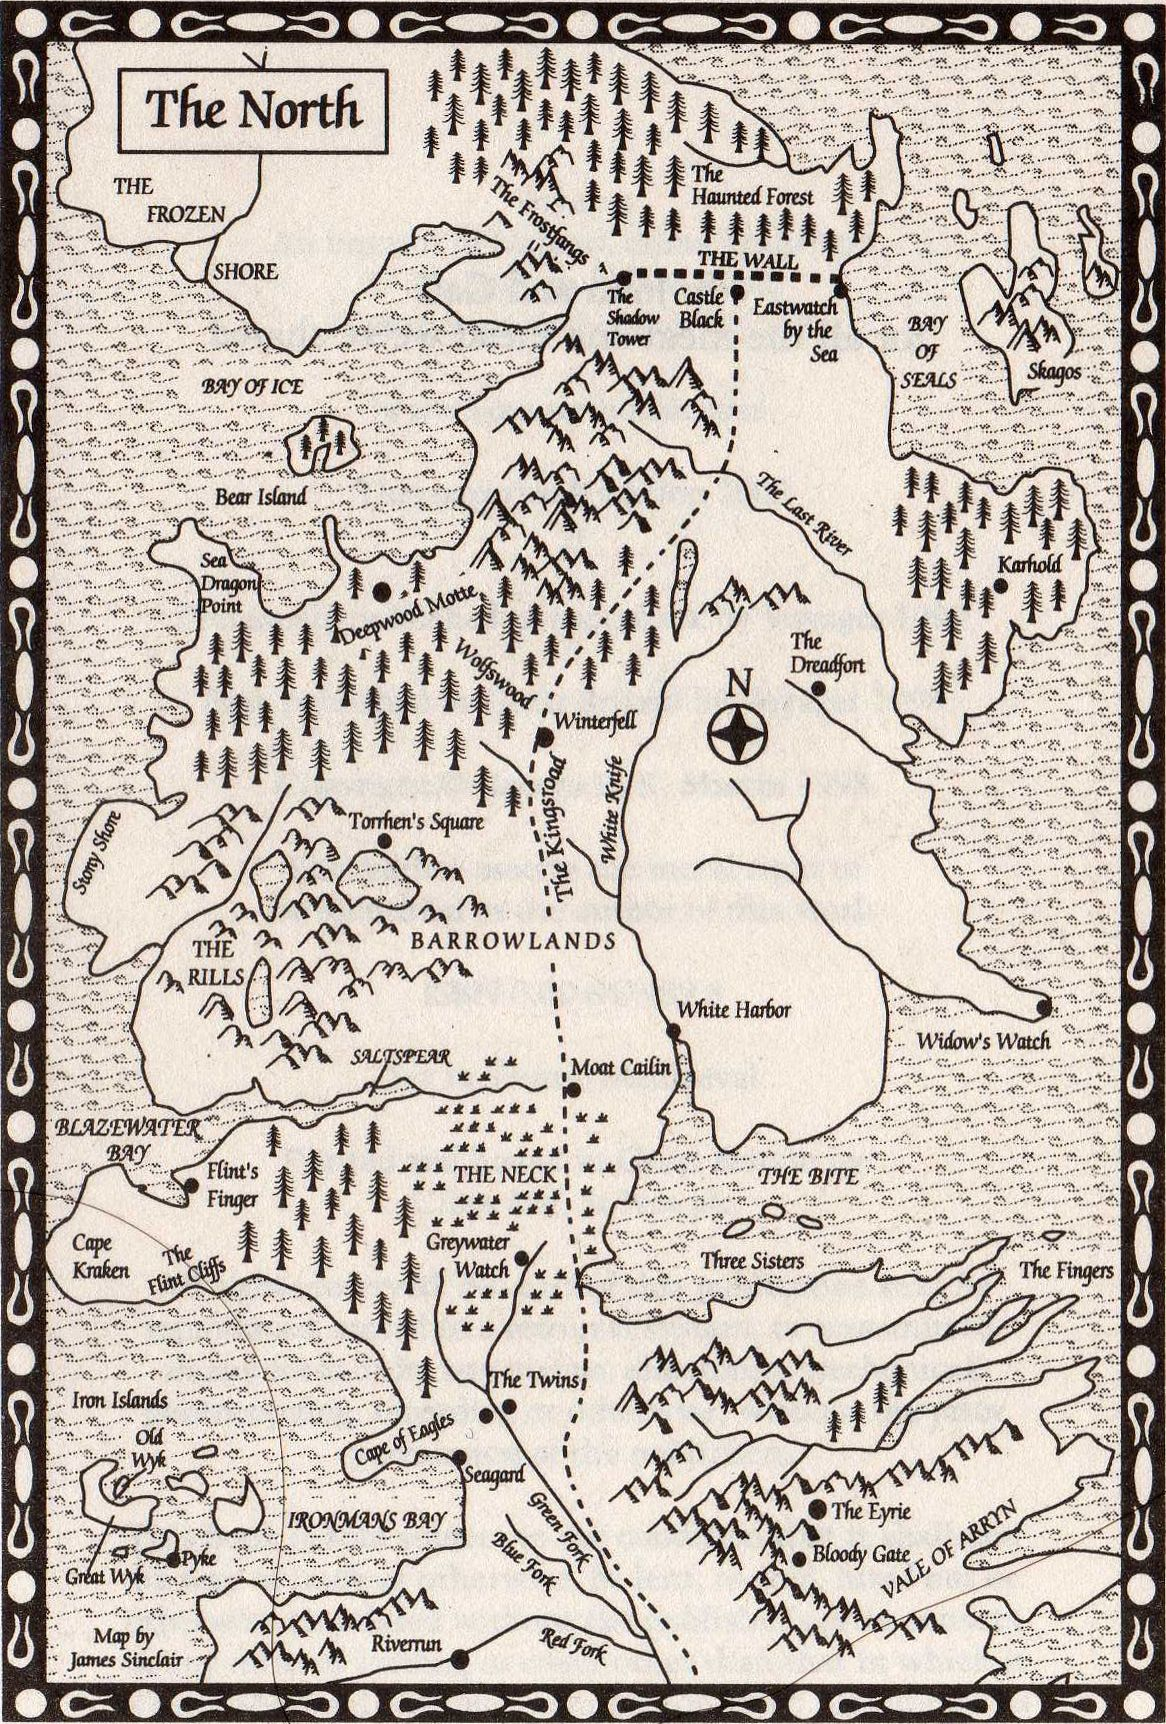 Satisfactory image throughout game of thrones printable map